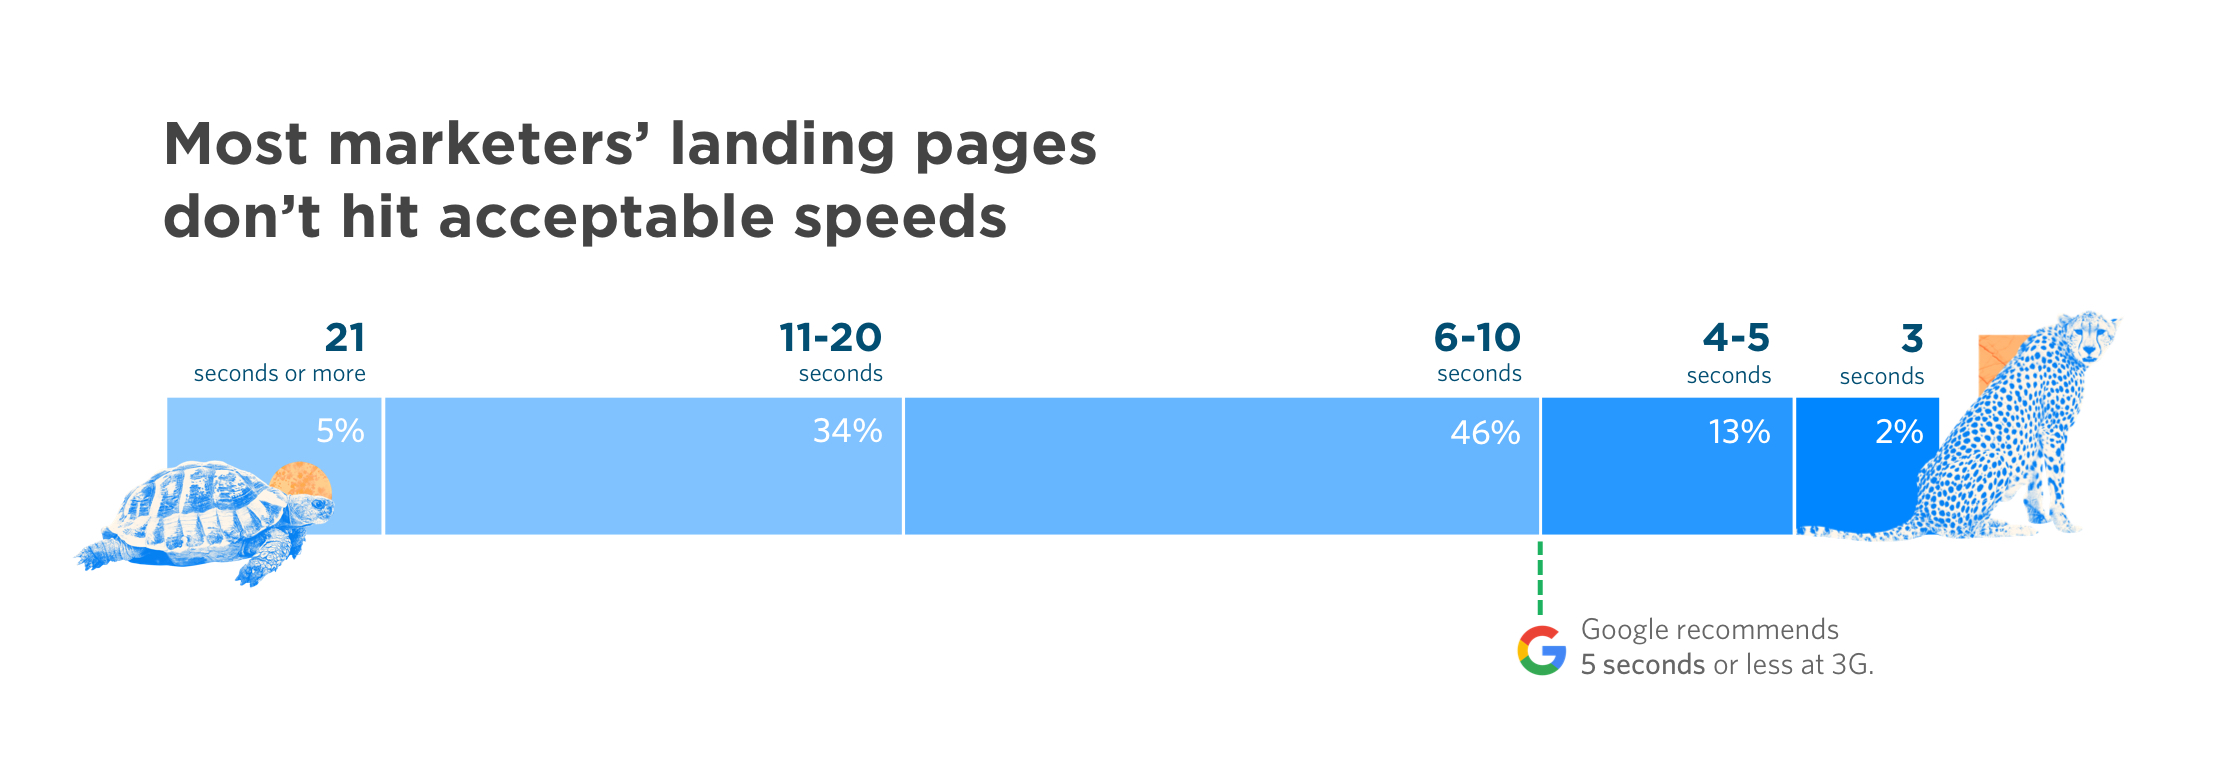 Only 2% of marketers had pages that loading in 3 seconds